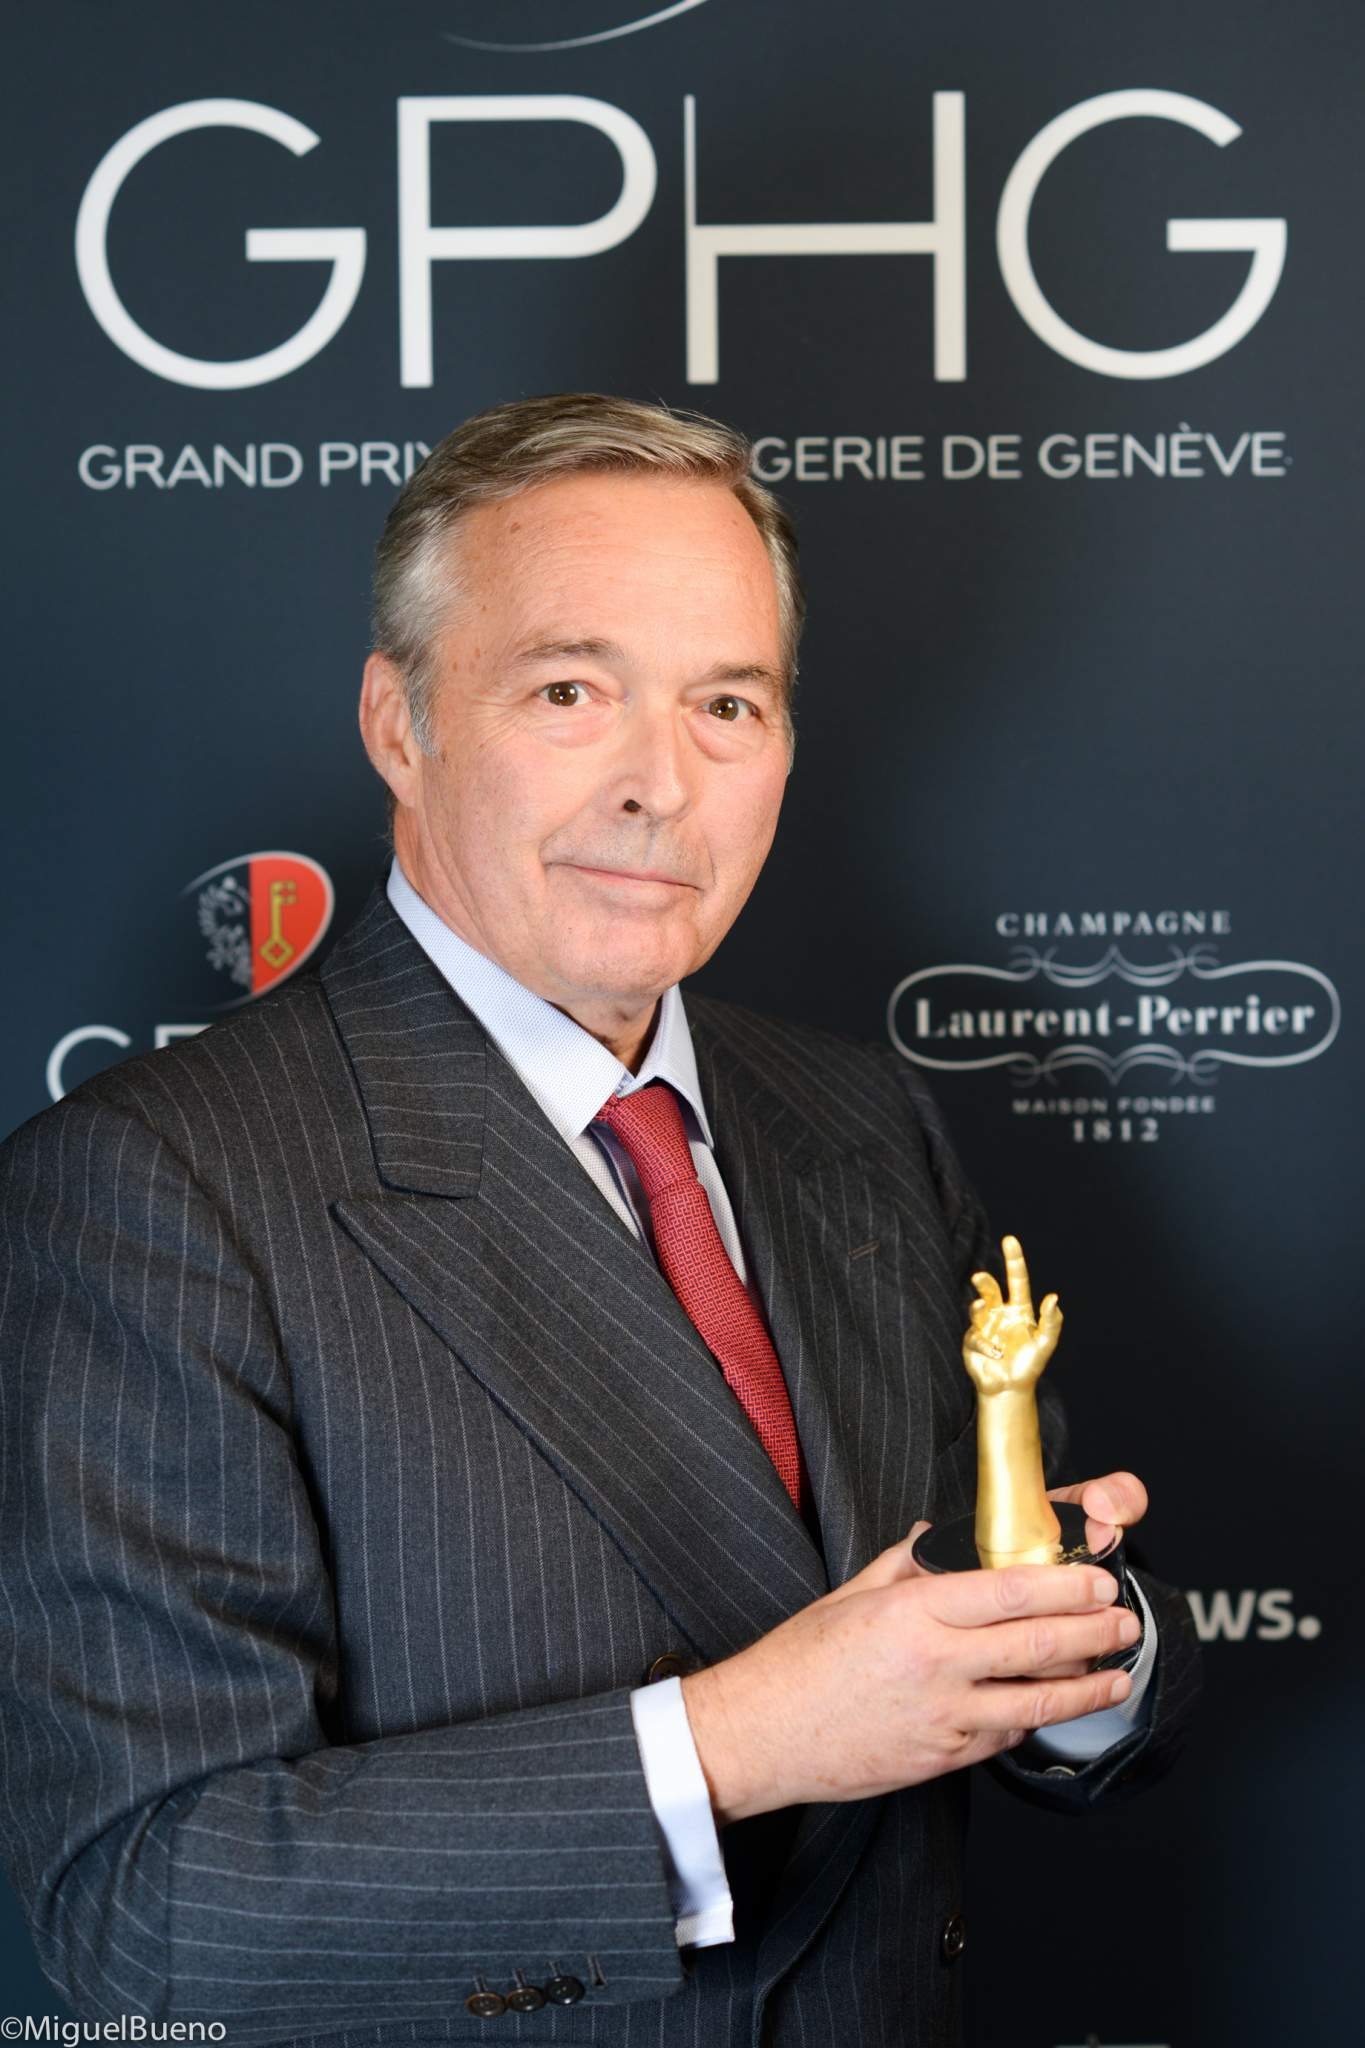 President of Chronométrie Ferdinand Berthoud, winner of the Chronometry Watch Prize 2019